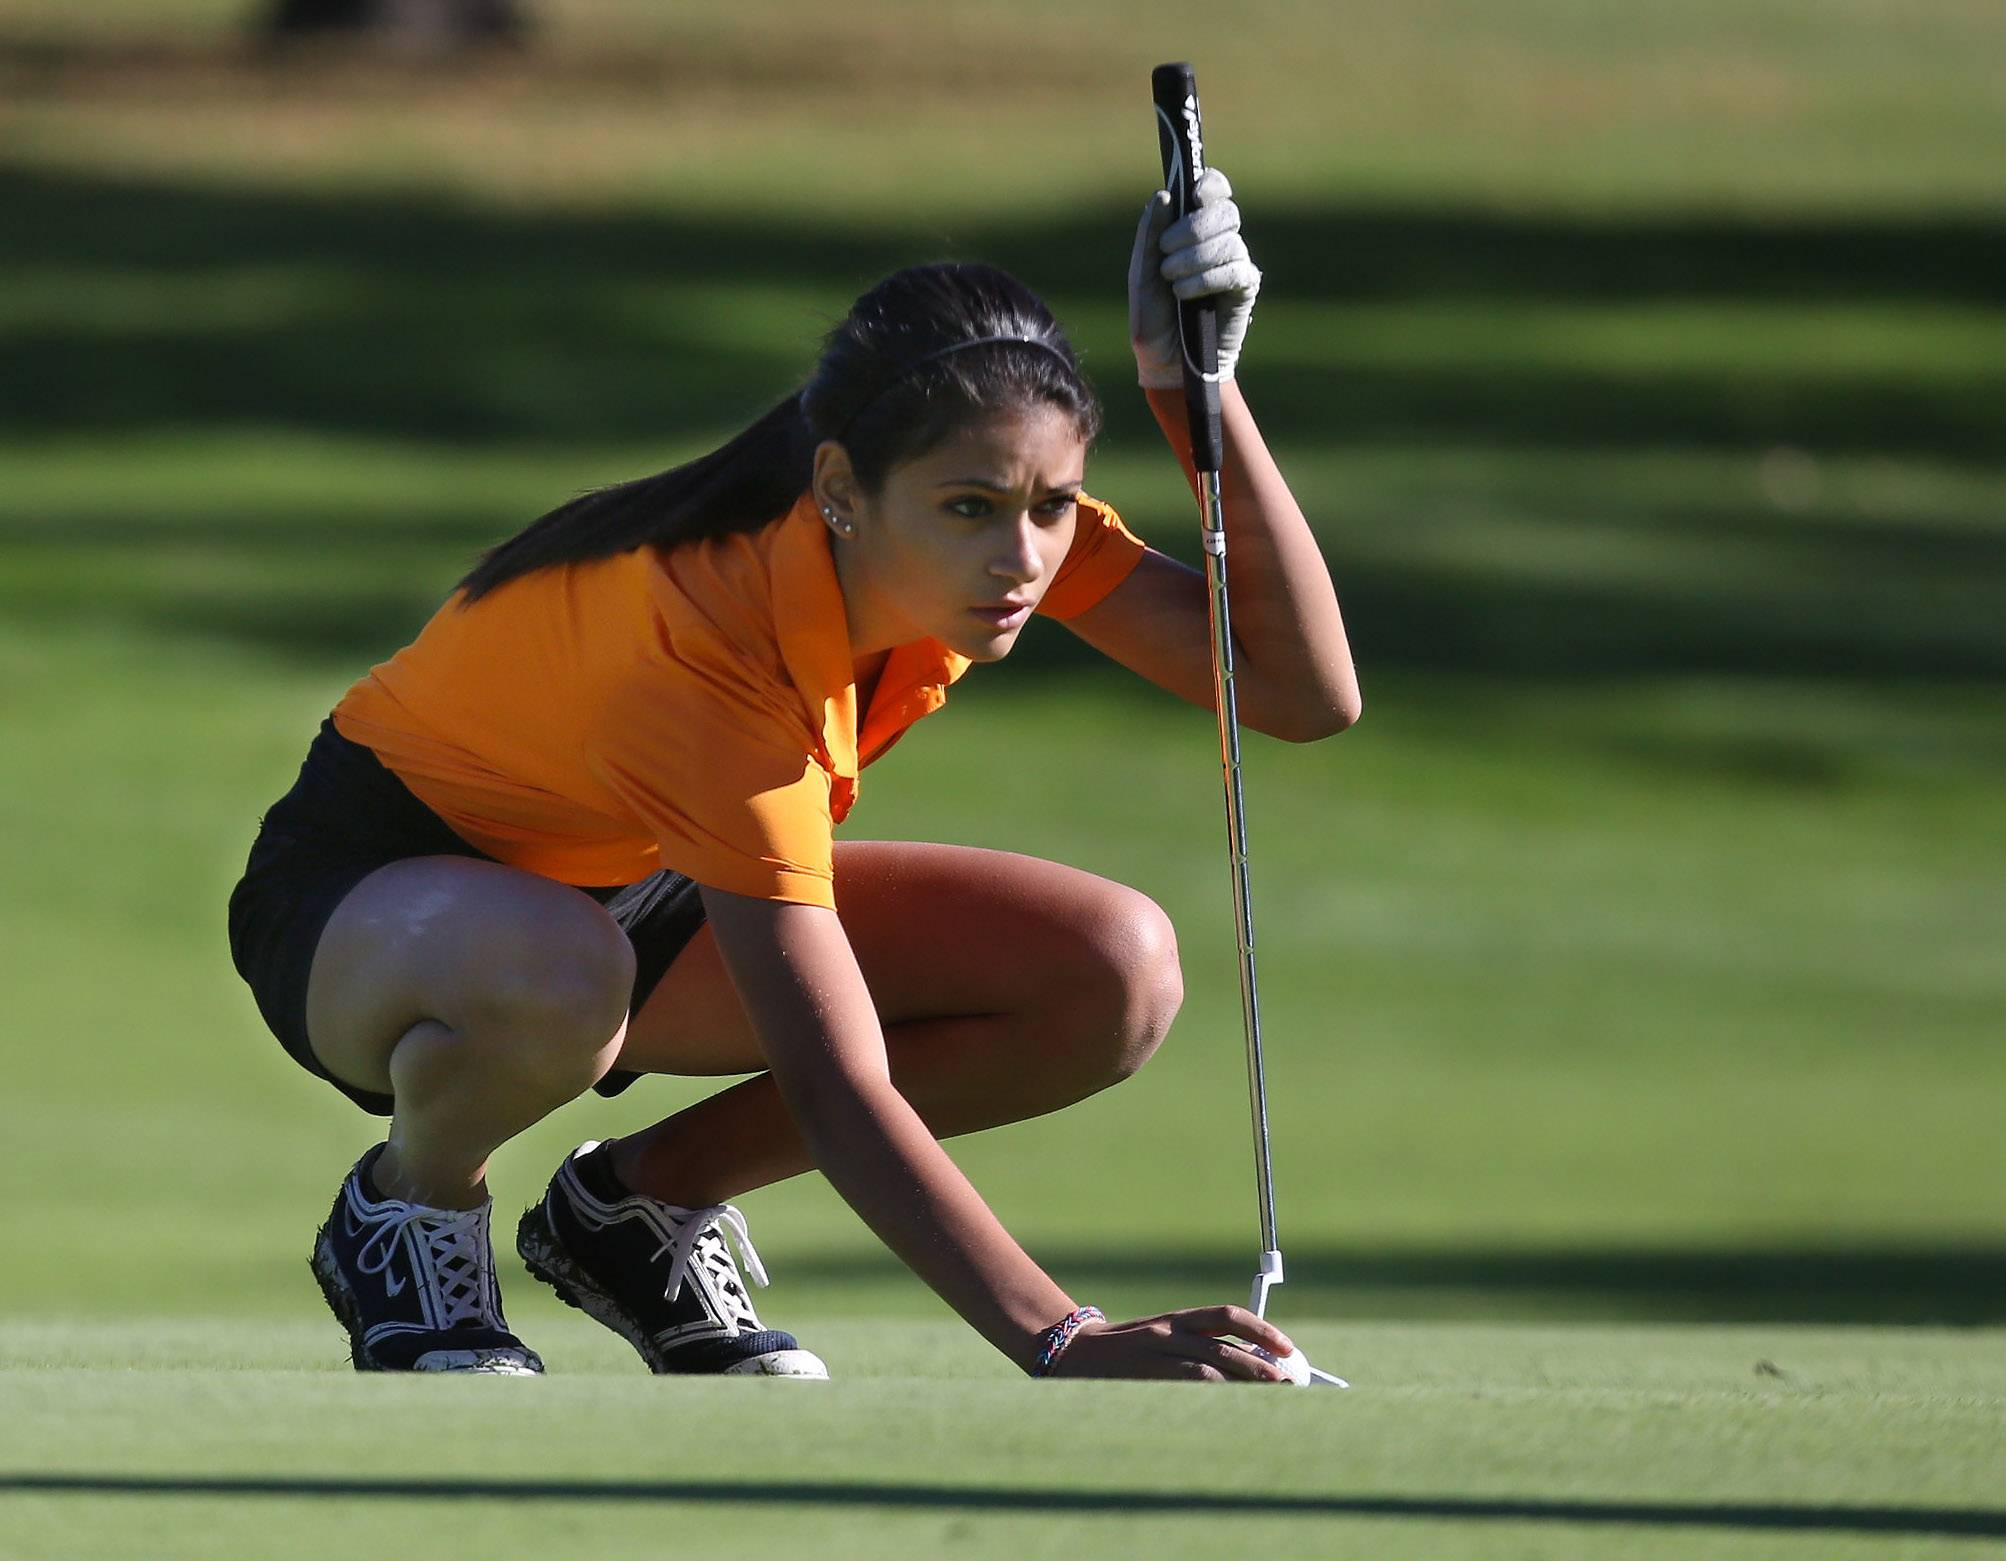 Libertyville golfer Simone Mikaelian lines up her putt on the first hole during last year's Carmel regional at Bonnie Brook Golf Course in Waukegan.